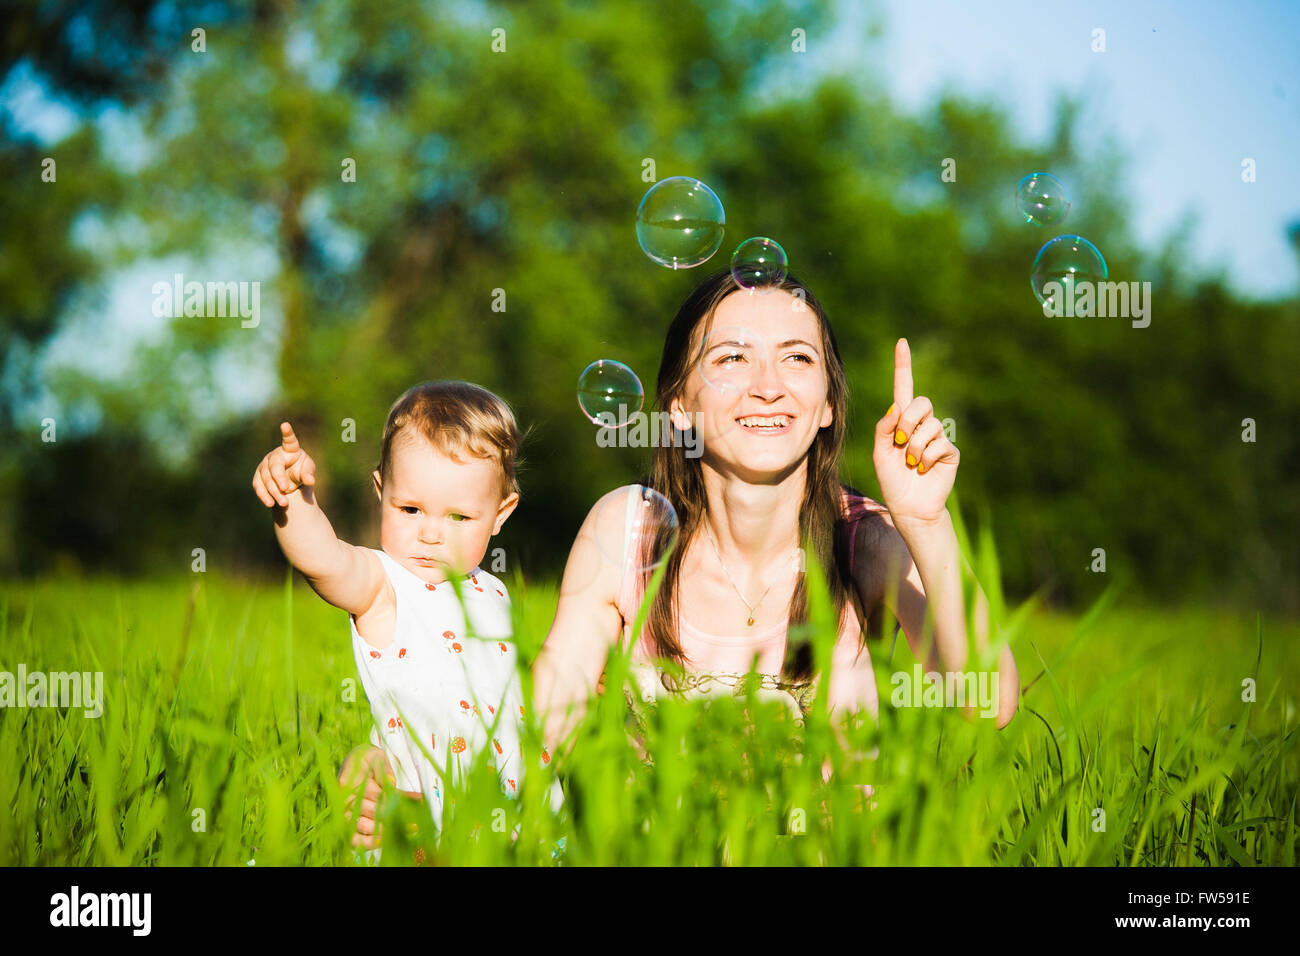 Mom and baby girl laying on grass and cheerfully catching soap bubbles with fingers. Happy family concept. - Stock Image